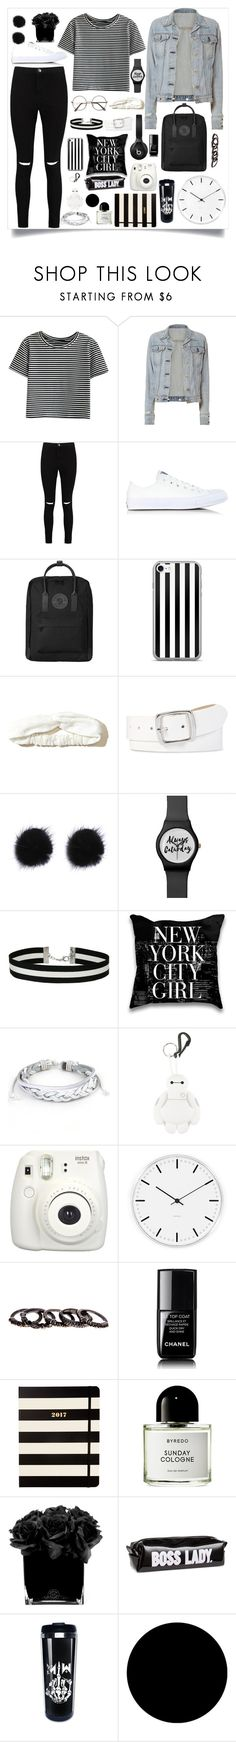 """""""Untitled #19"""" by xxabella ❤ liked on Polyvore featuring rag & bone, Boohoo, Converse, Fjällräven, Beats by Dr. Dre, Hollister Co., INC International Concepts, Miss Selfridge, West Coast Jewelry and Disney"""